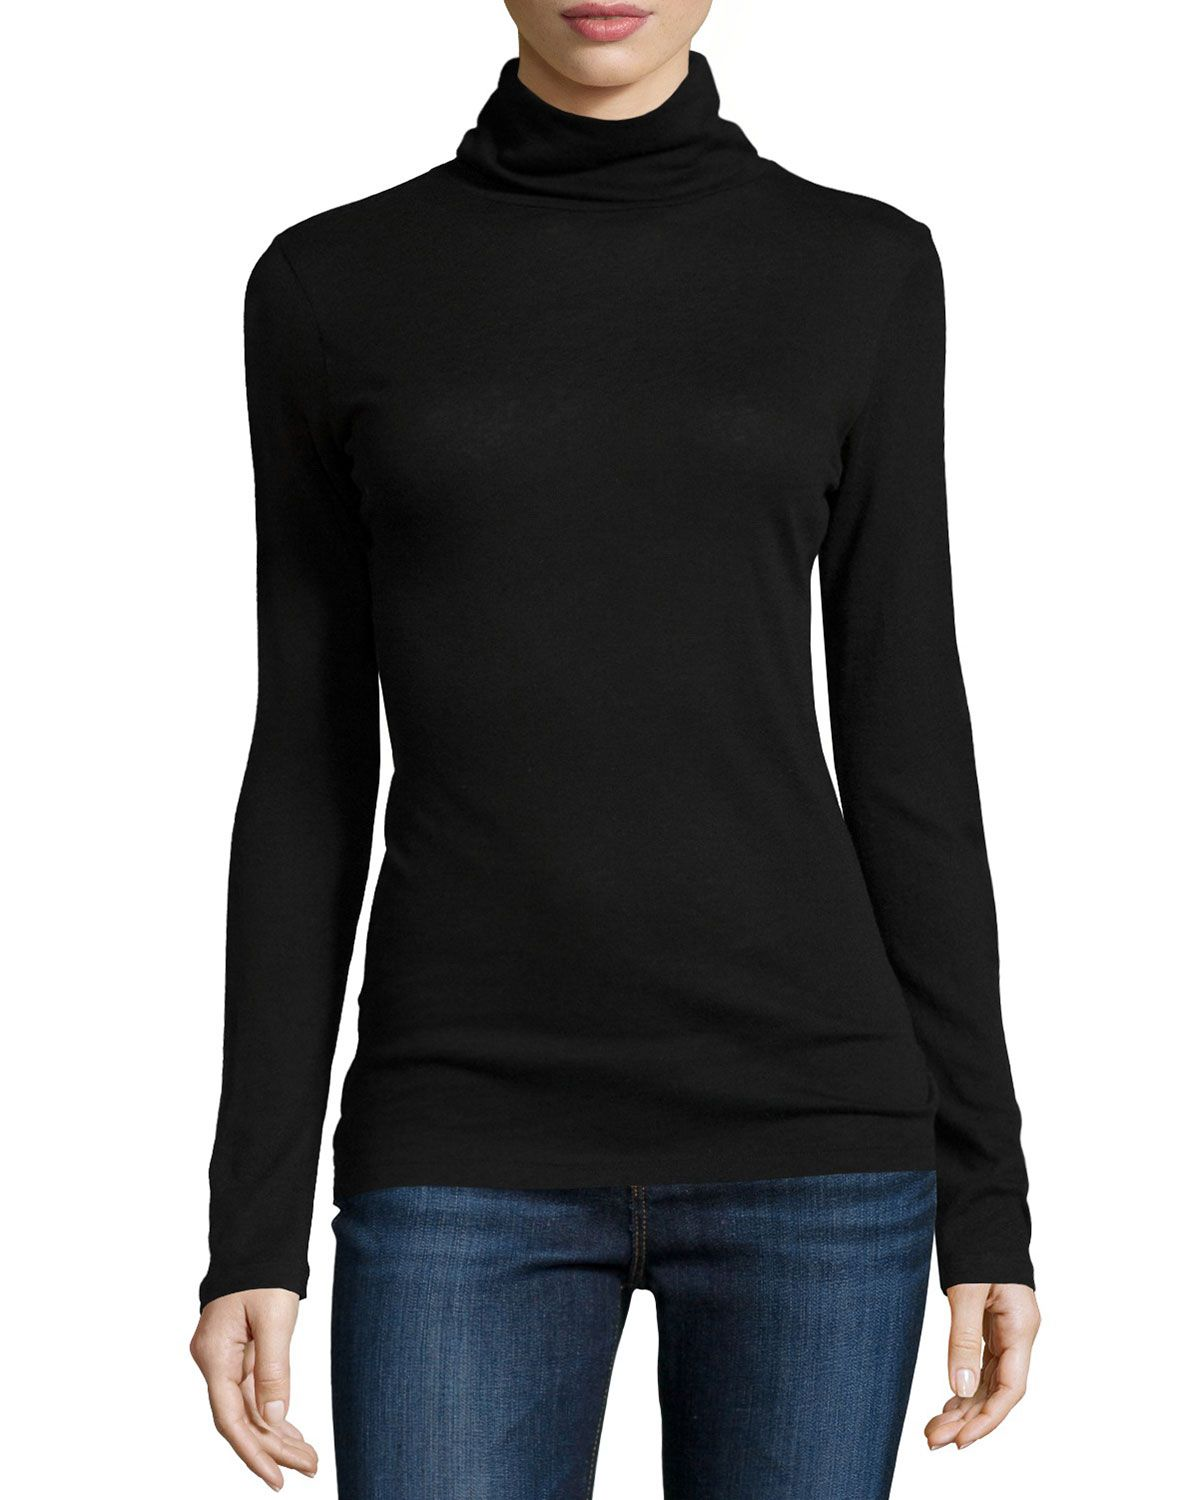 Clearance Top Quality Neiman Marcus Turtleneck Cashmere Top Free Shipping Supply Free Shipping Visit New Cheap Big Discount YRmFJ